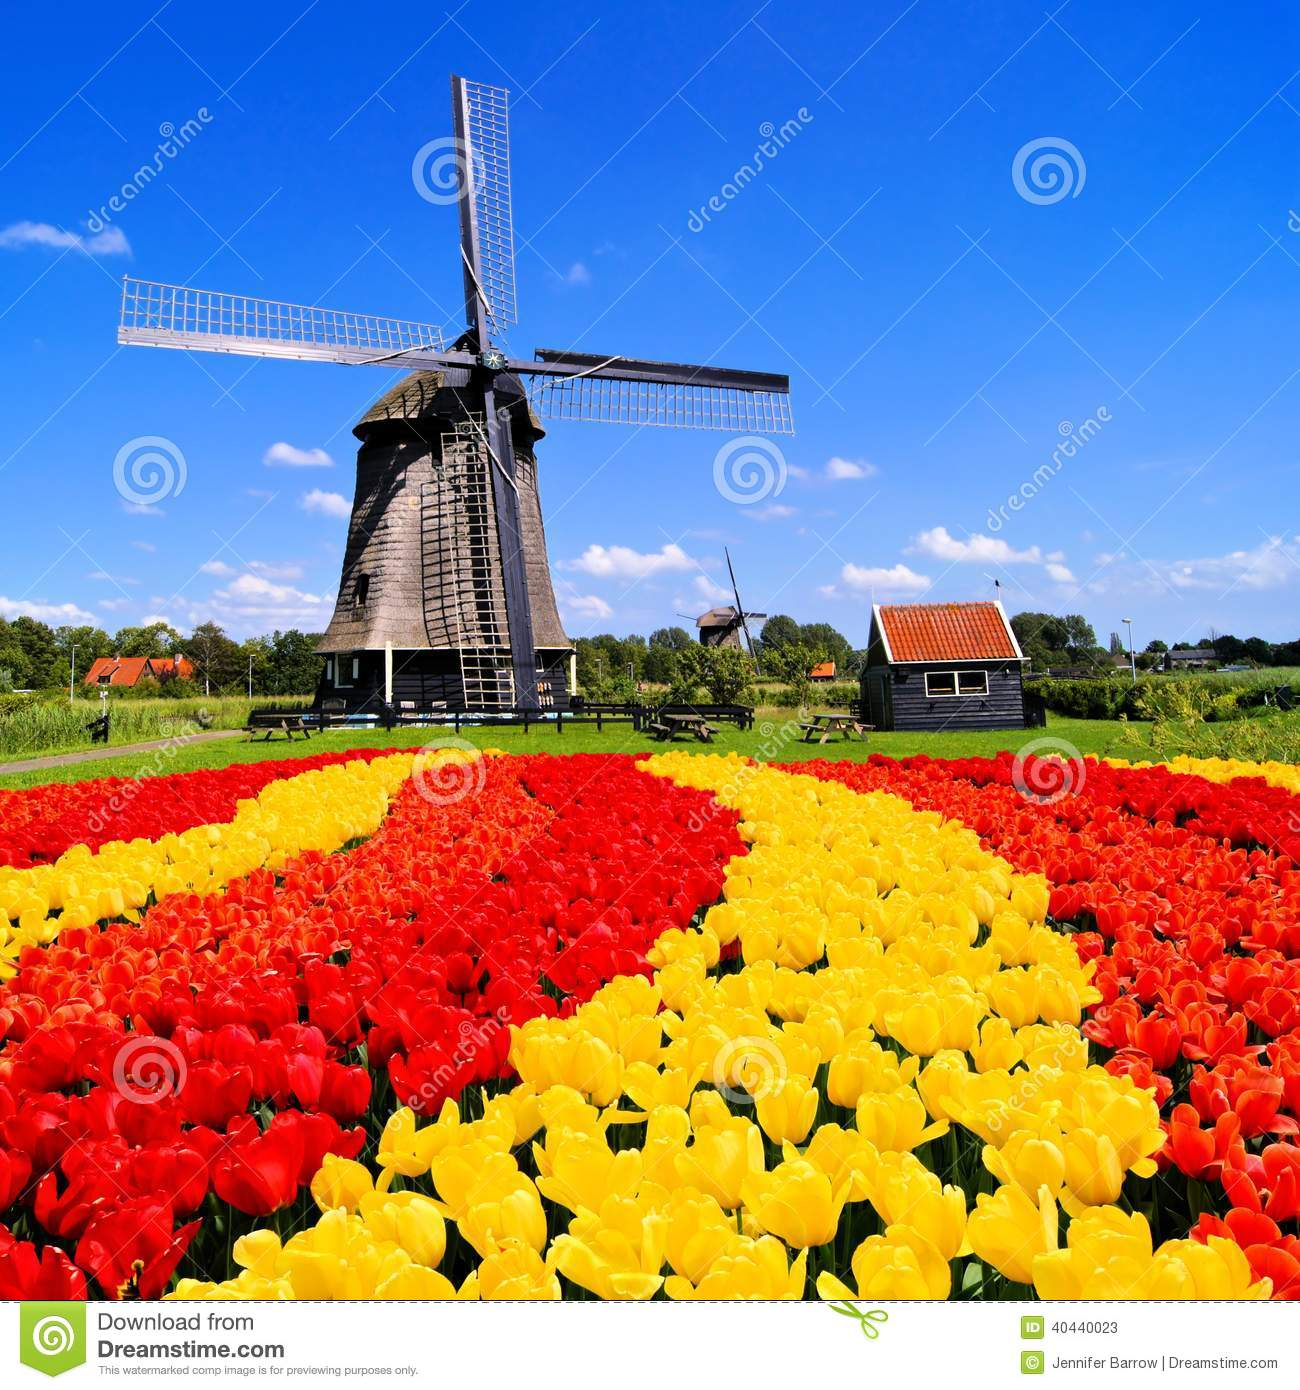 Vibrant tulips with windmill in the background, Netherlands.